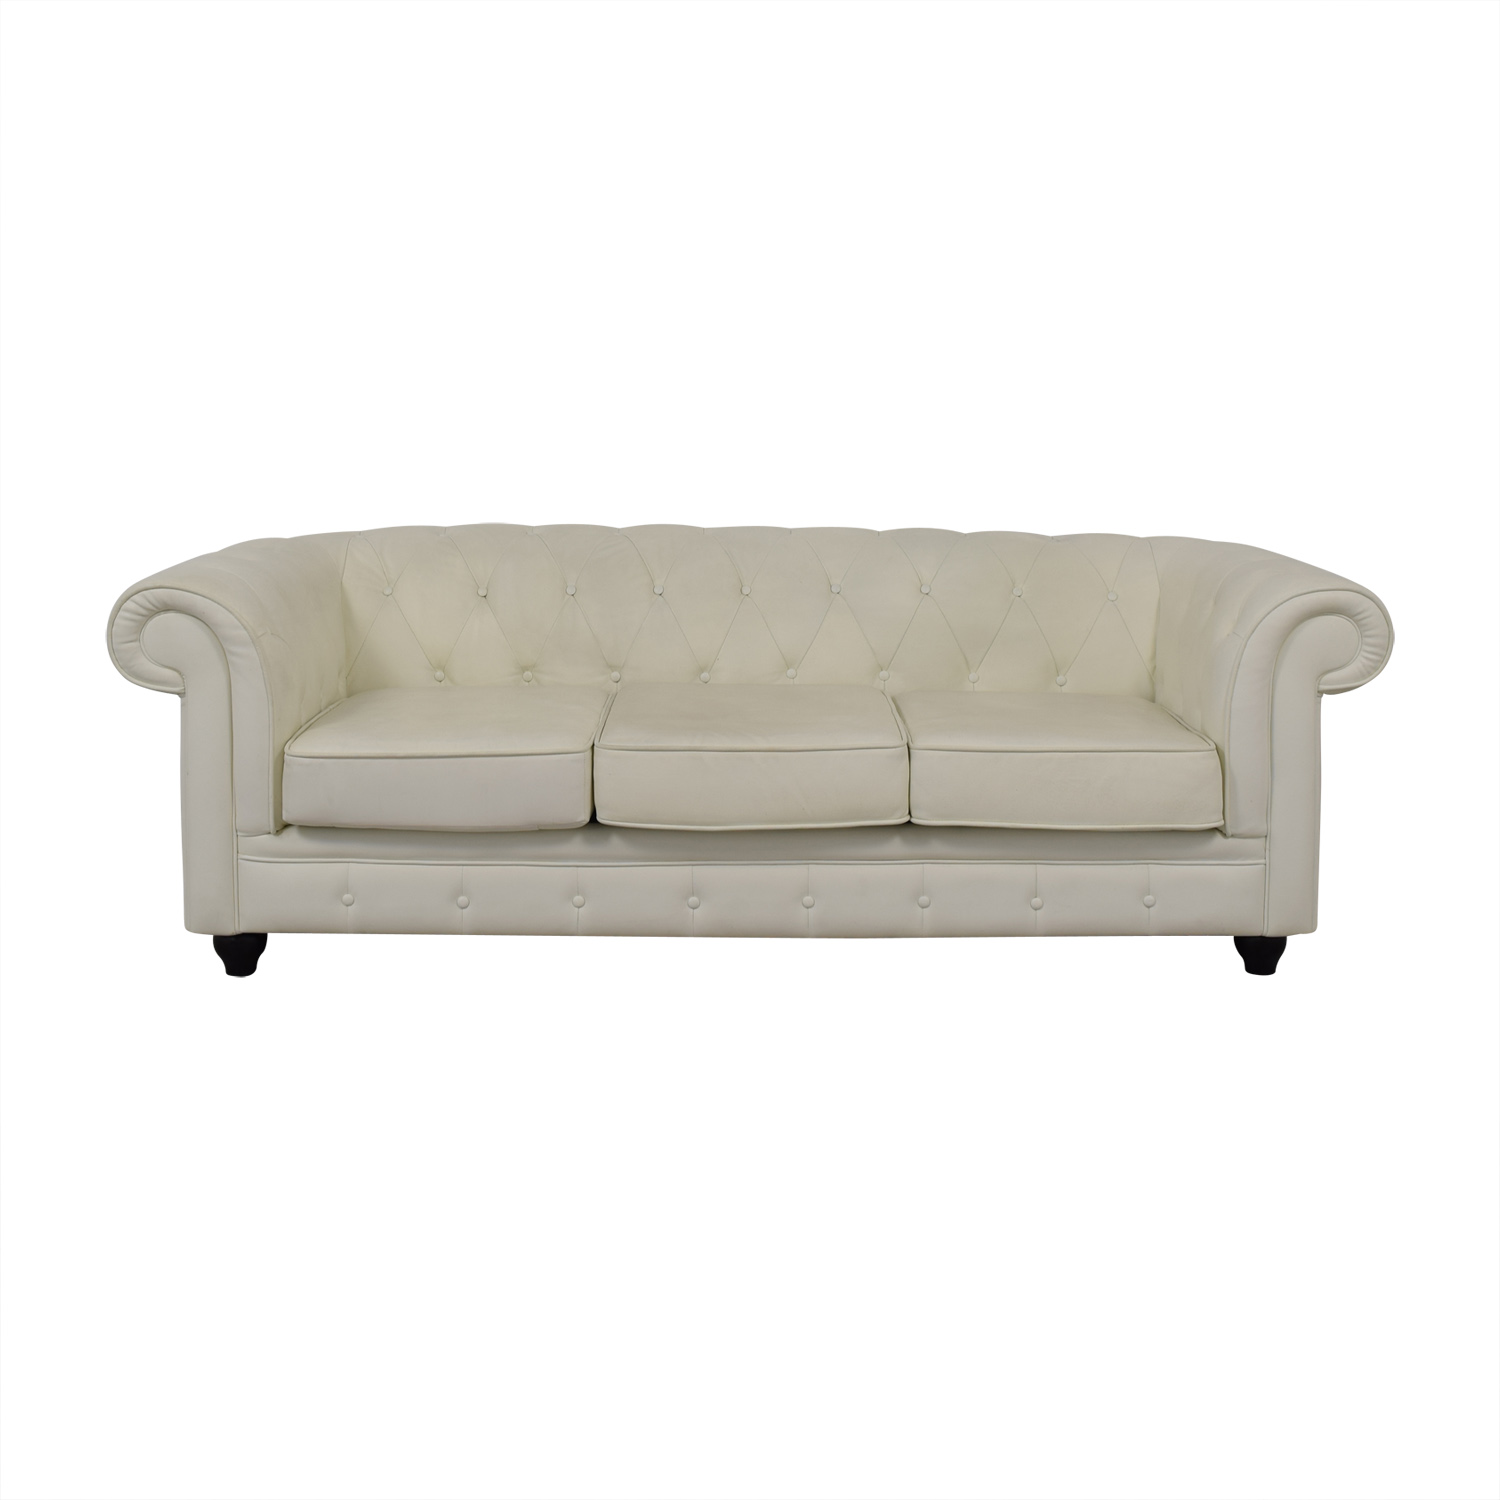 Modani Furniture Chesterfield White Tufted Three-Cushion Sofa / Classic Sofas